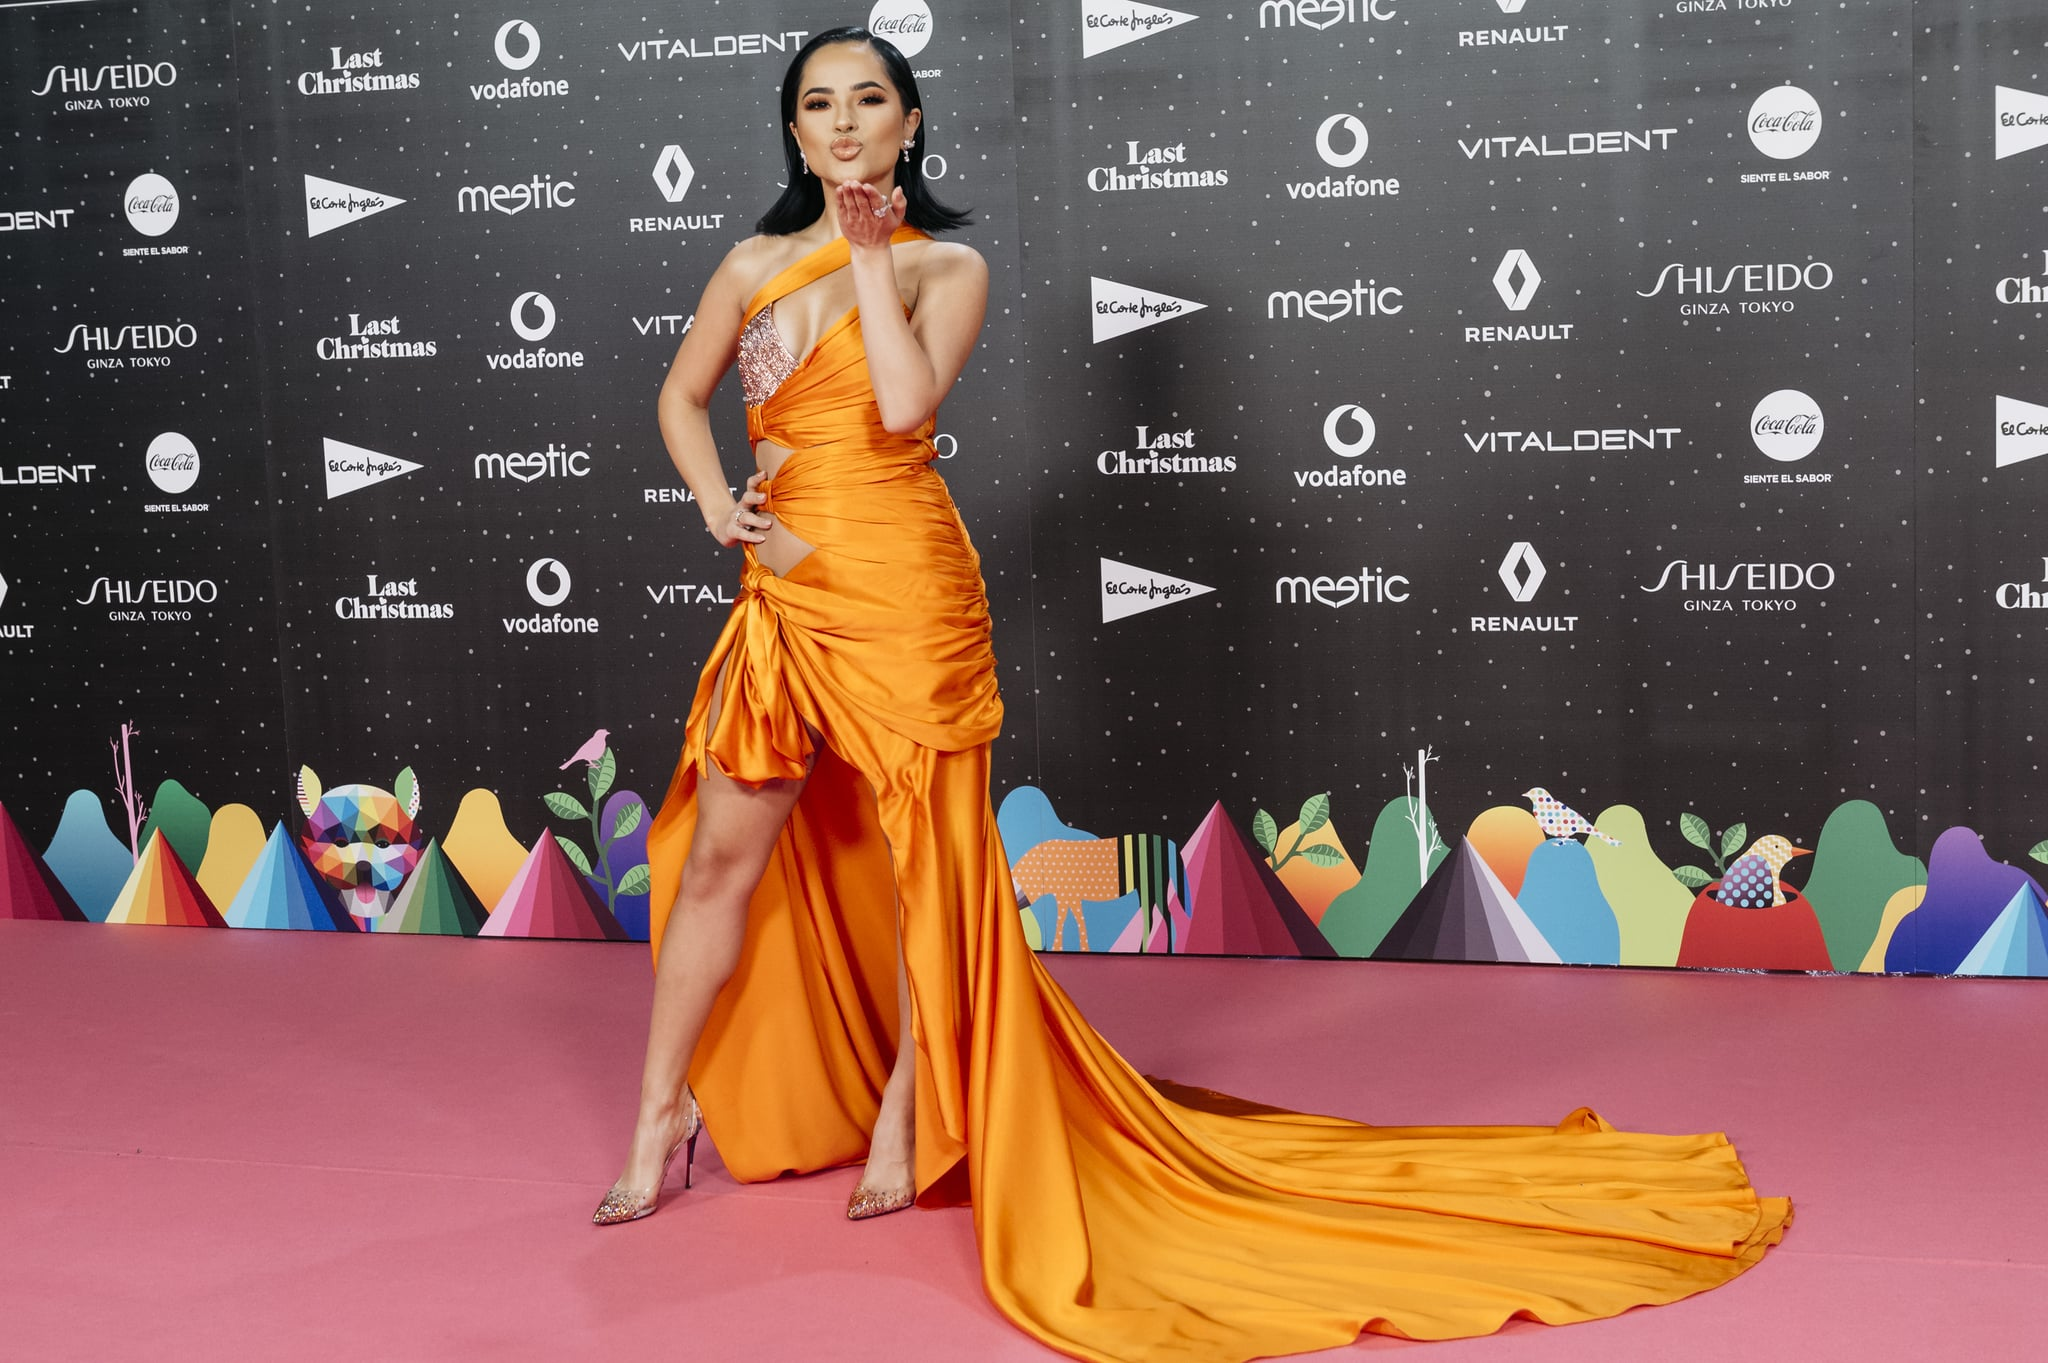 MADRID, SPAIN - NOVEMBER 08: American singer, songwriter and actres Becky G attends 'Los40 music awards 2019' photocall at Wizink Center on November 08, 2019 in Madrid, Spain. (Photo by Mariano Regidor/WireImage)